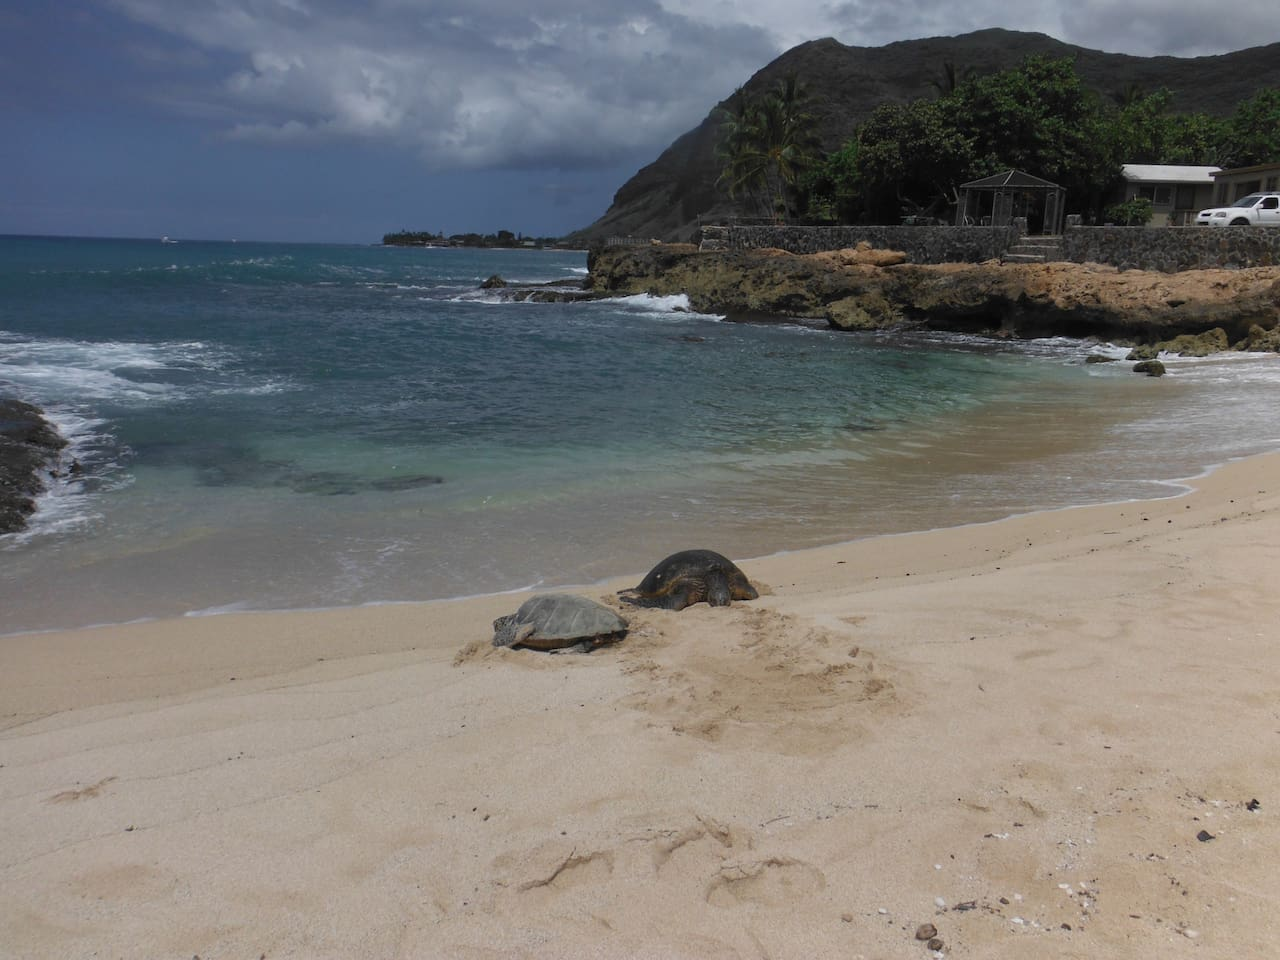 Turtle beach short distance from Banana patch home.